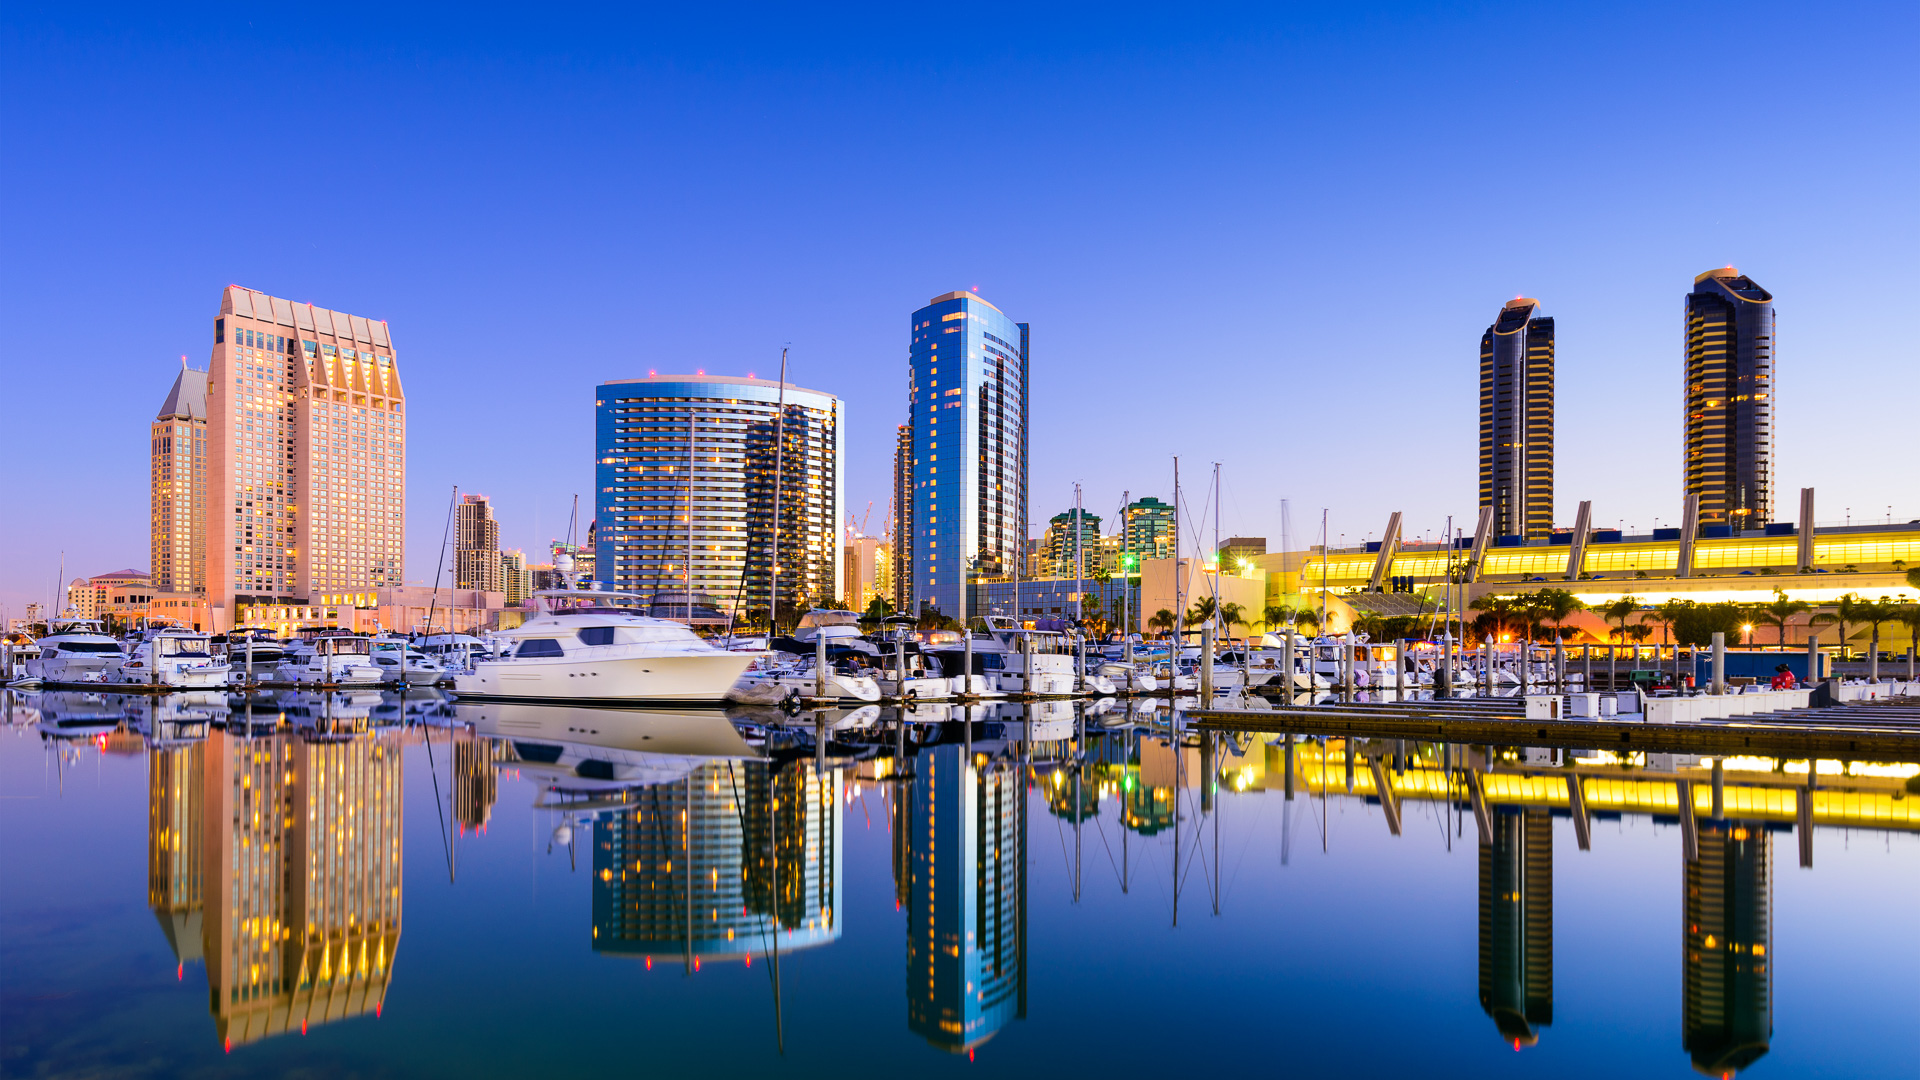 Slide 7 of 32: Meals: $360Drinks (including beer): $60.363-night hotel stay: $285Airfare: $634.08San Diego might be one of the cheapest summer destinations in the world, but it can also be affordable in the fall if you're a smart vacationer. The SoCal city is full of beaches, hiking and biking trails for outdoor enthusiasts. Those looking for a little athletic inspiration can visit the U.S. Olympic Training Center in nearby Chula Vista. It offers guided tours for as little as $5 per person.